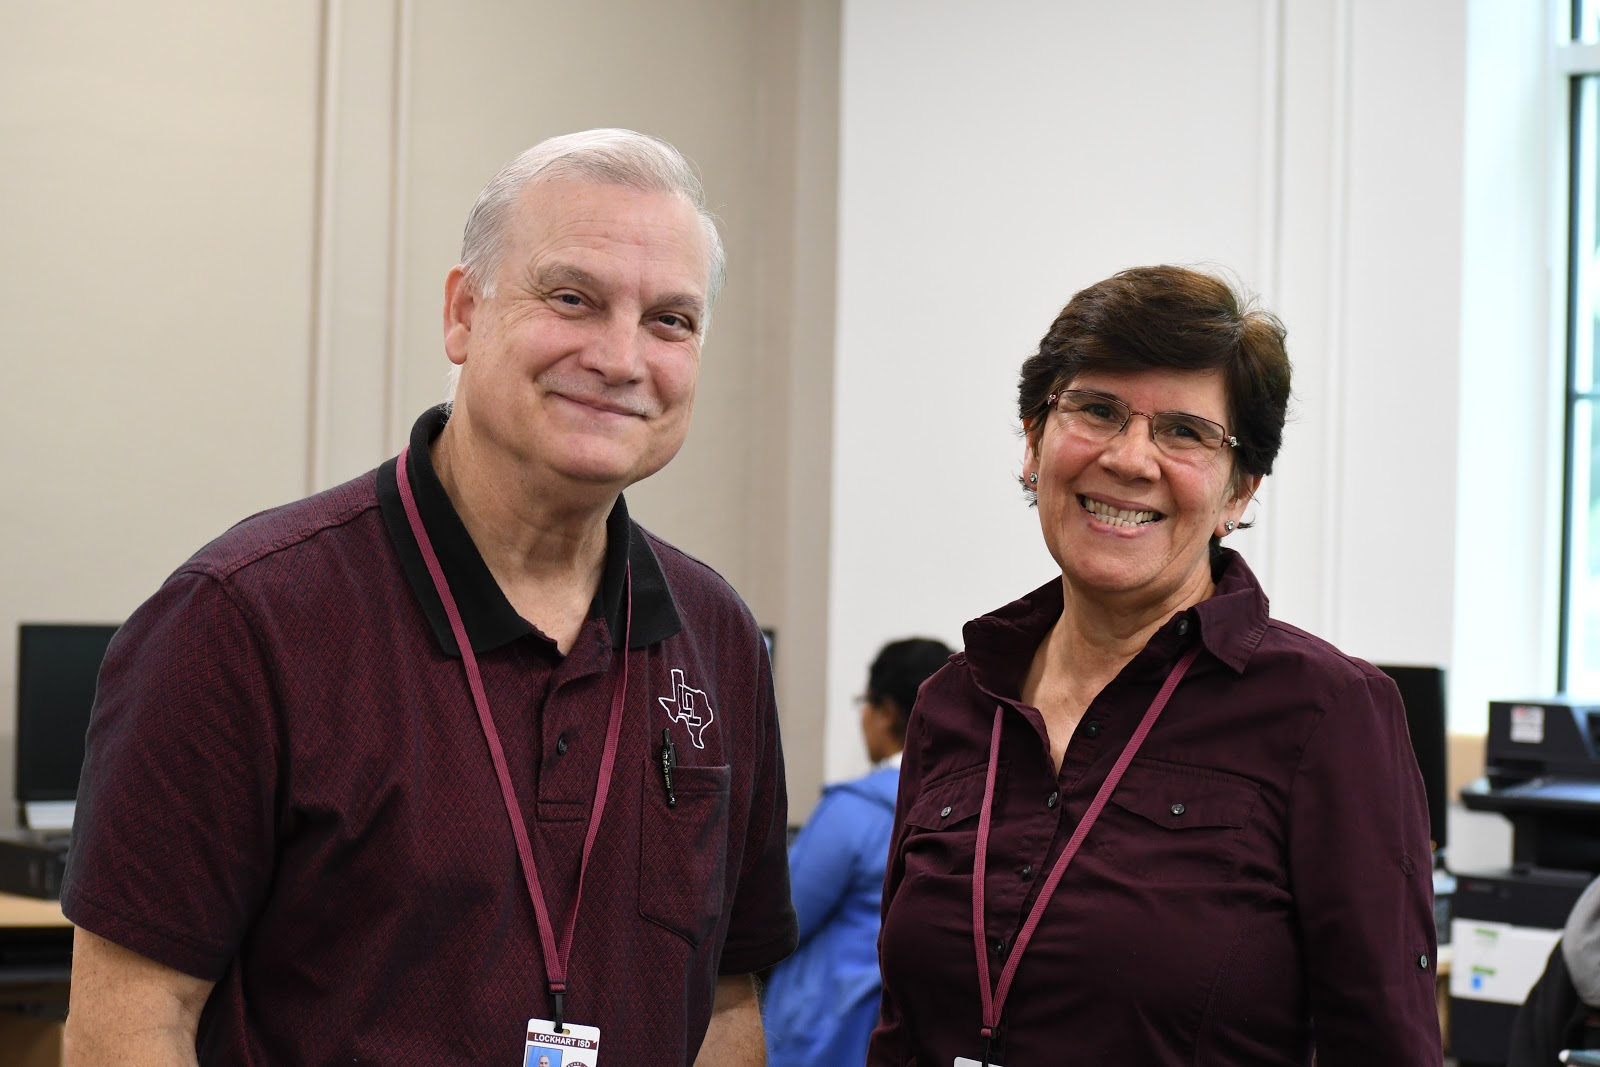 In photo: GED Instructors Norbert Vazquez & Piedad Dix